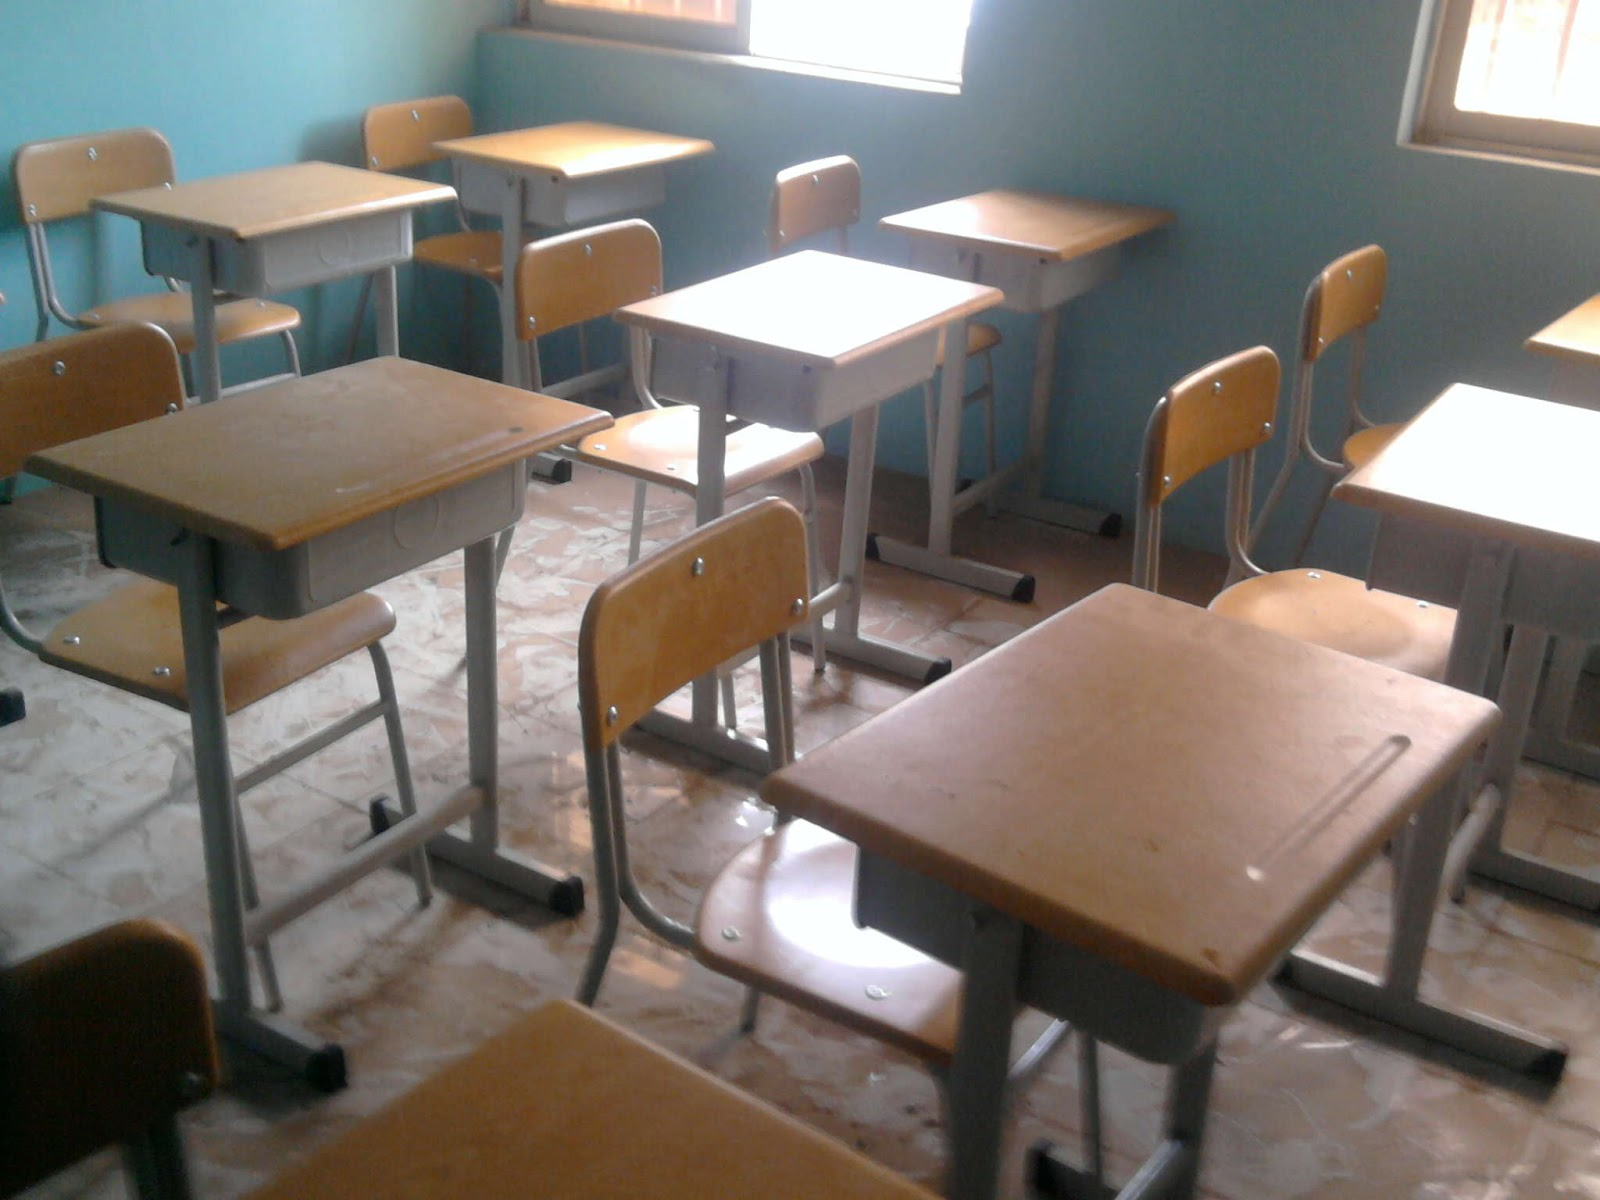 Classroom Furniture In Nigeria : Classroom furniture nigeria april